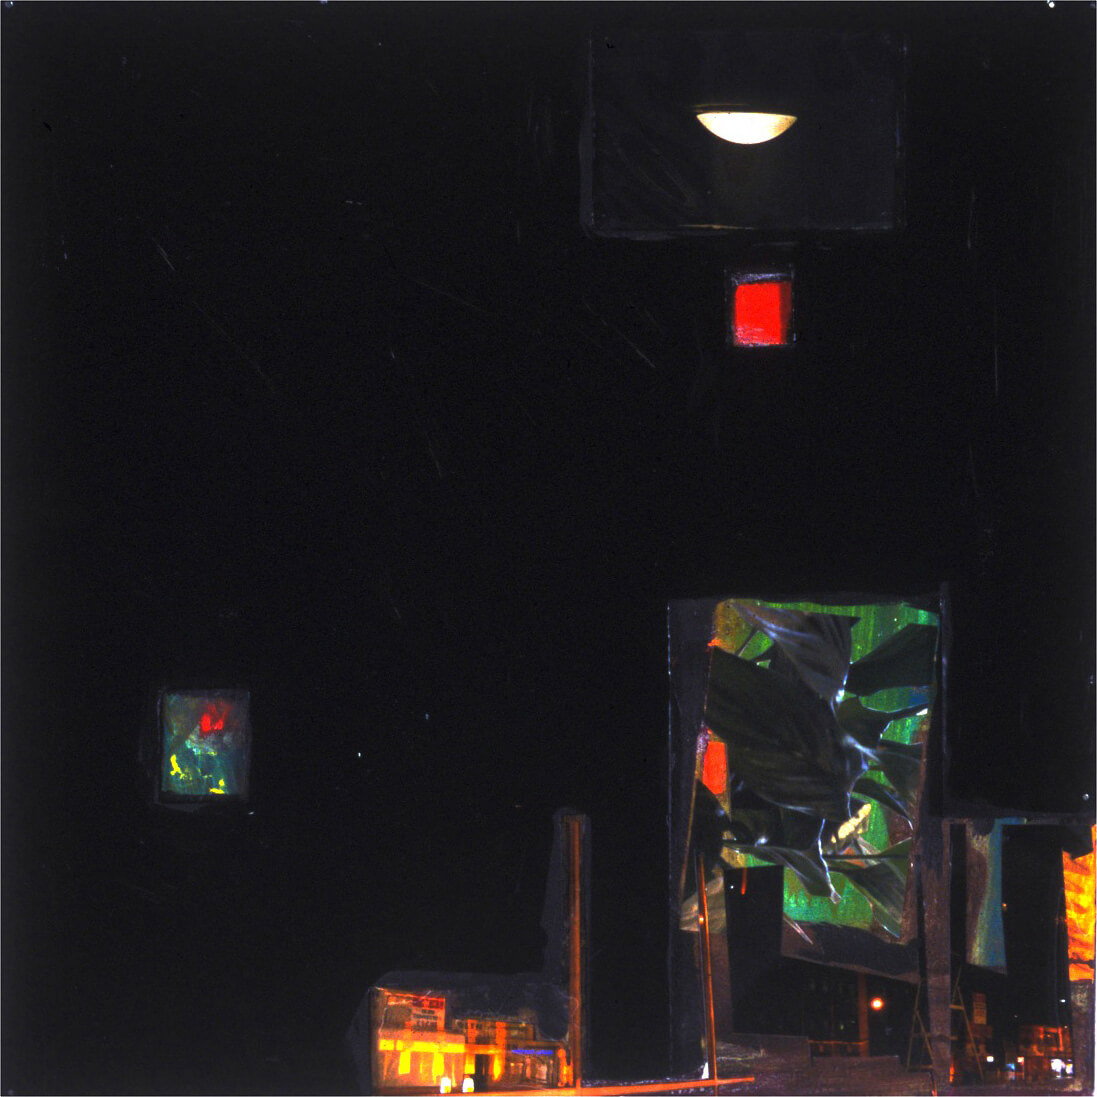 Room with Many views, 2005, photo prints, acrylic paints and foam board on canvas, 51 x 51 cm